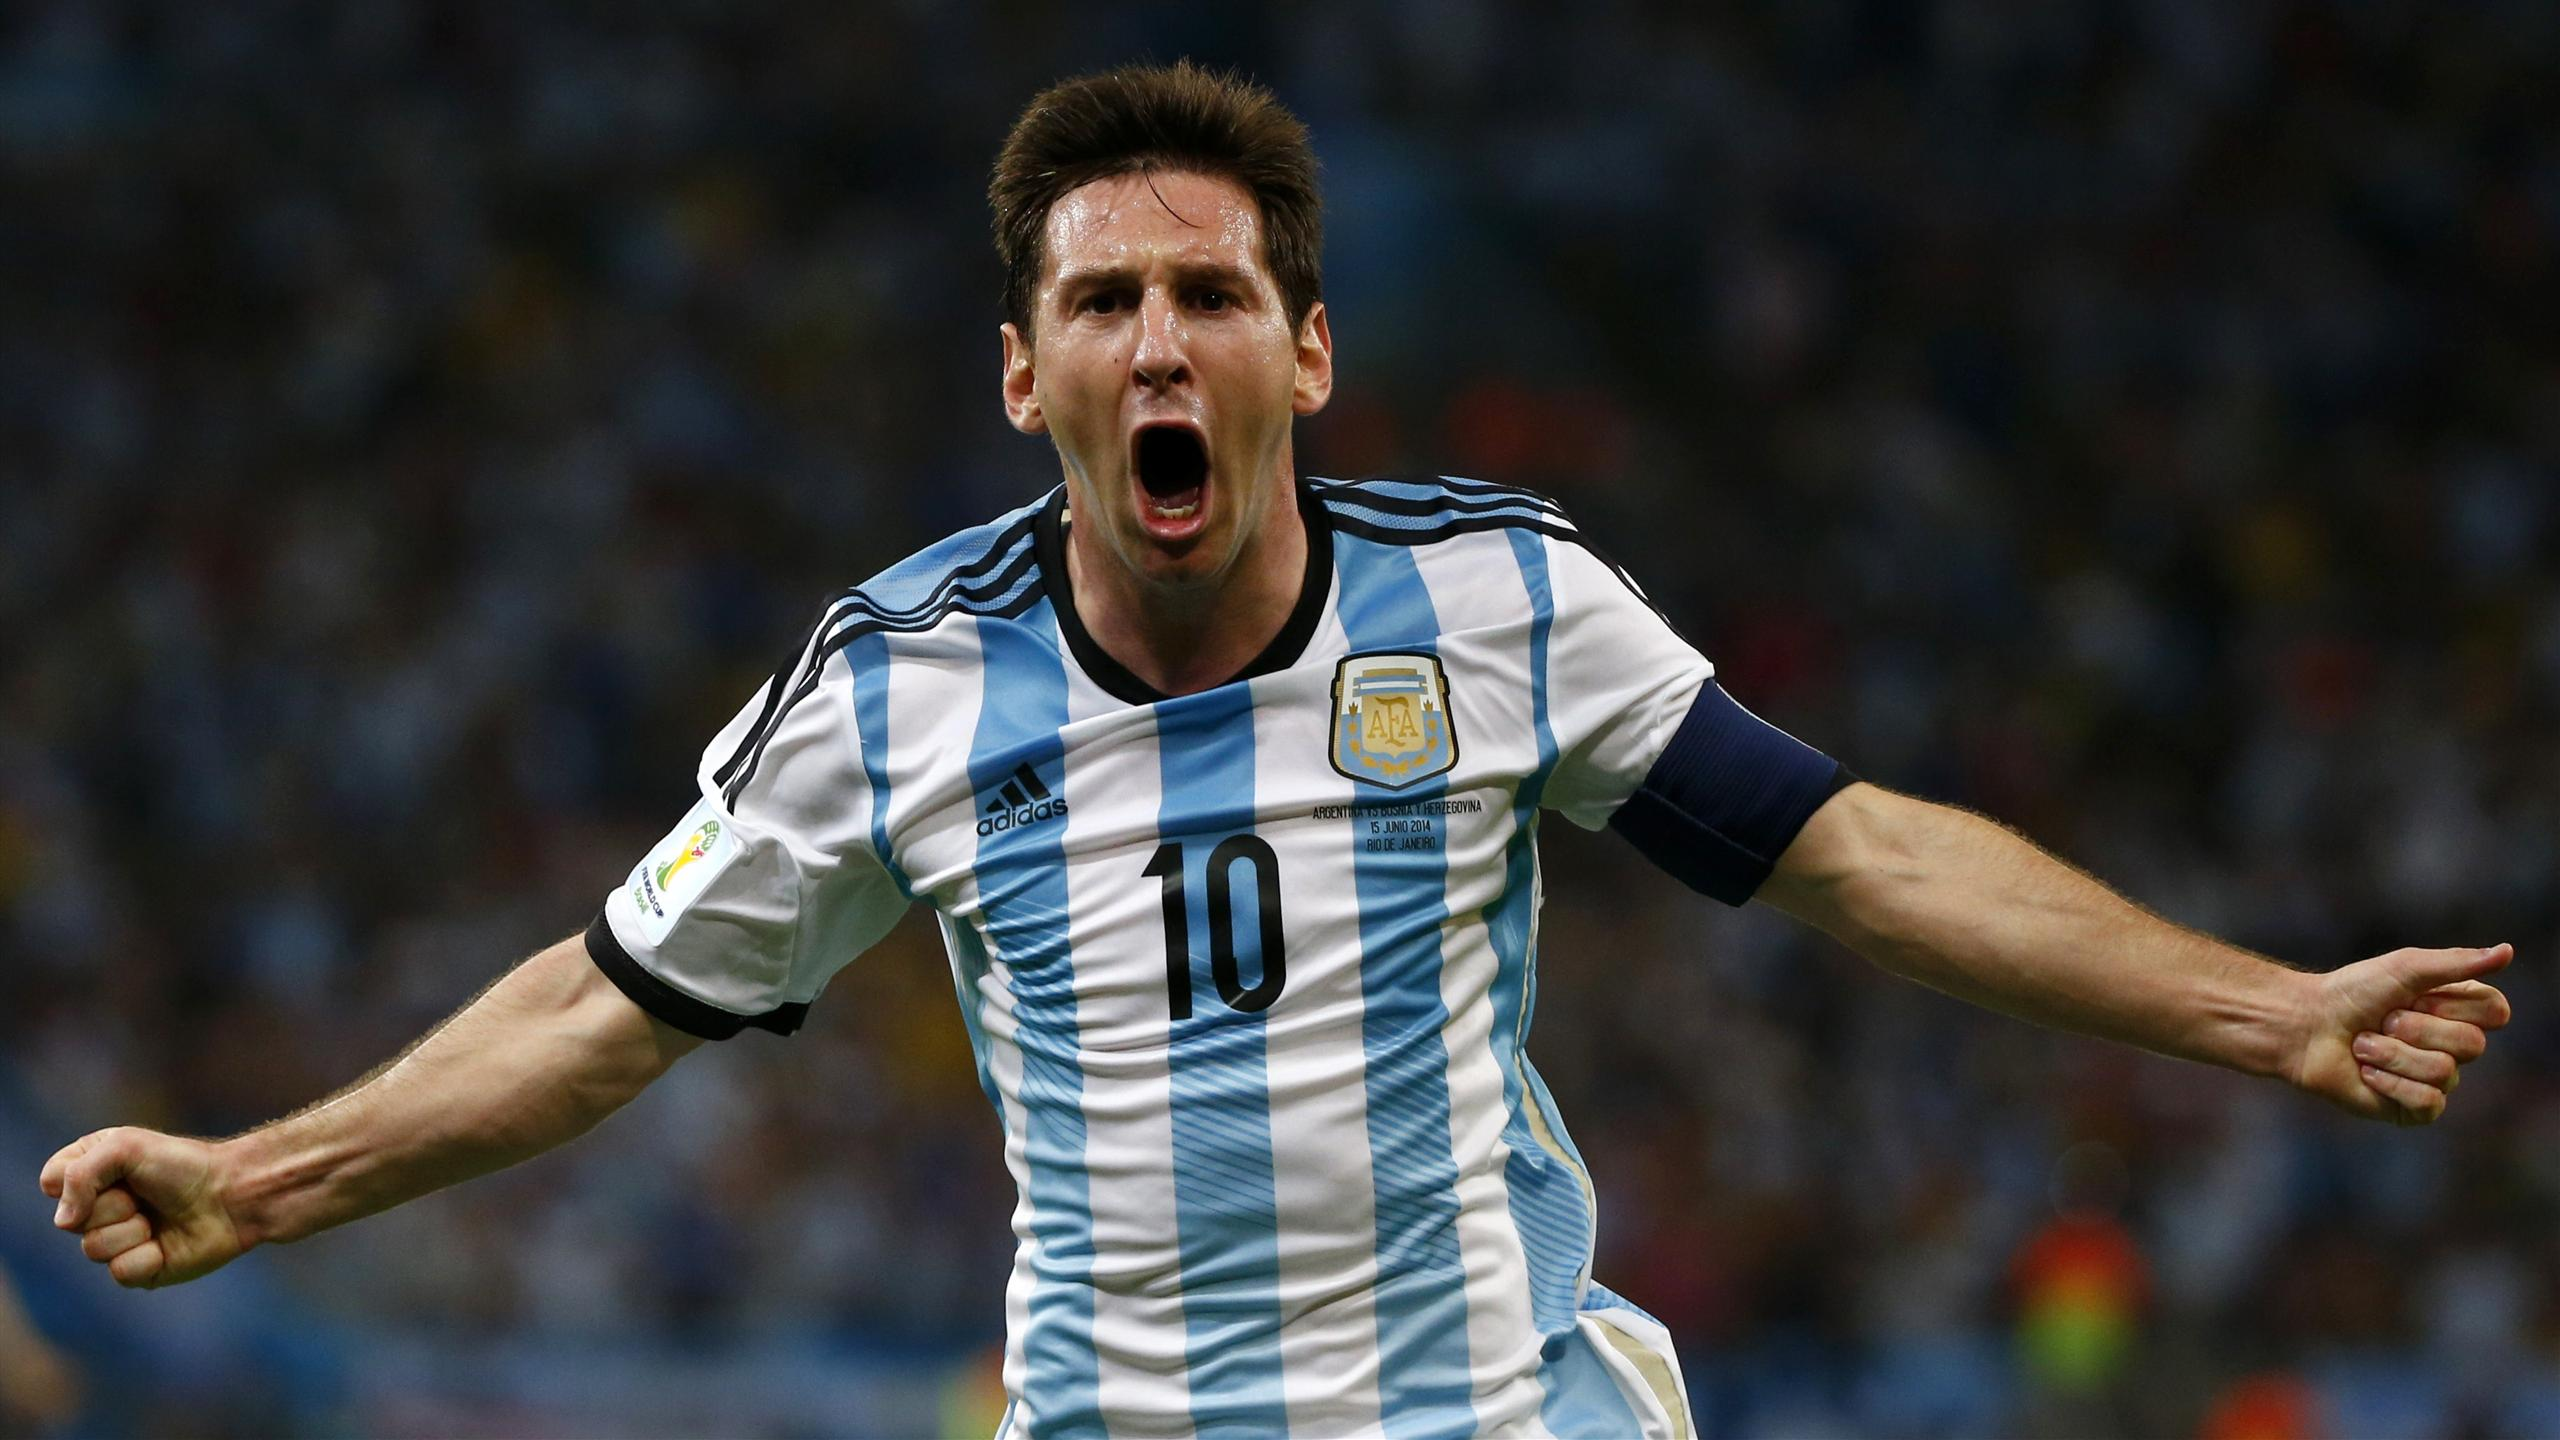 Lionel Messi high definition pictures in Argentina team jersey